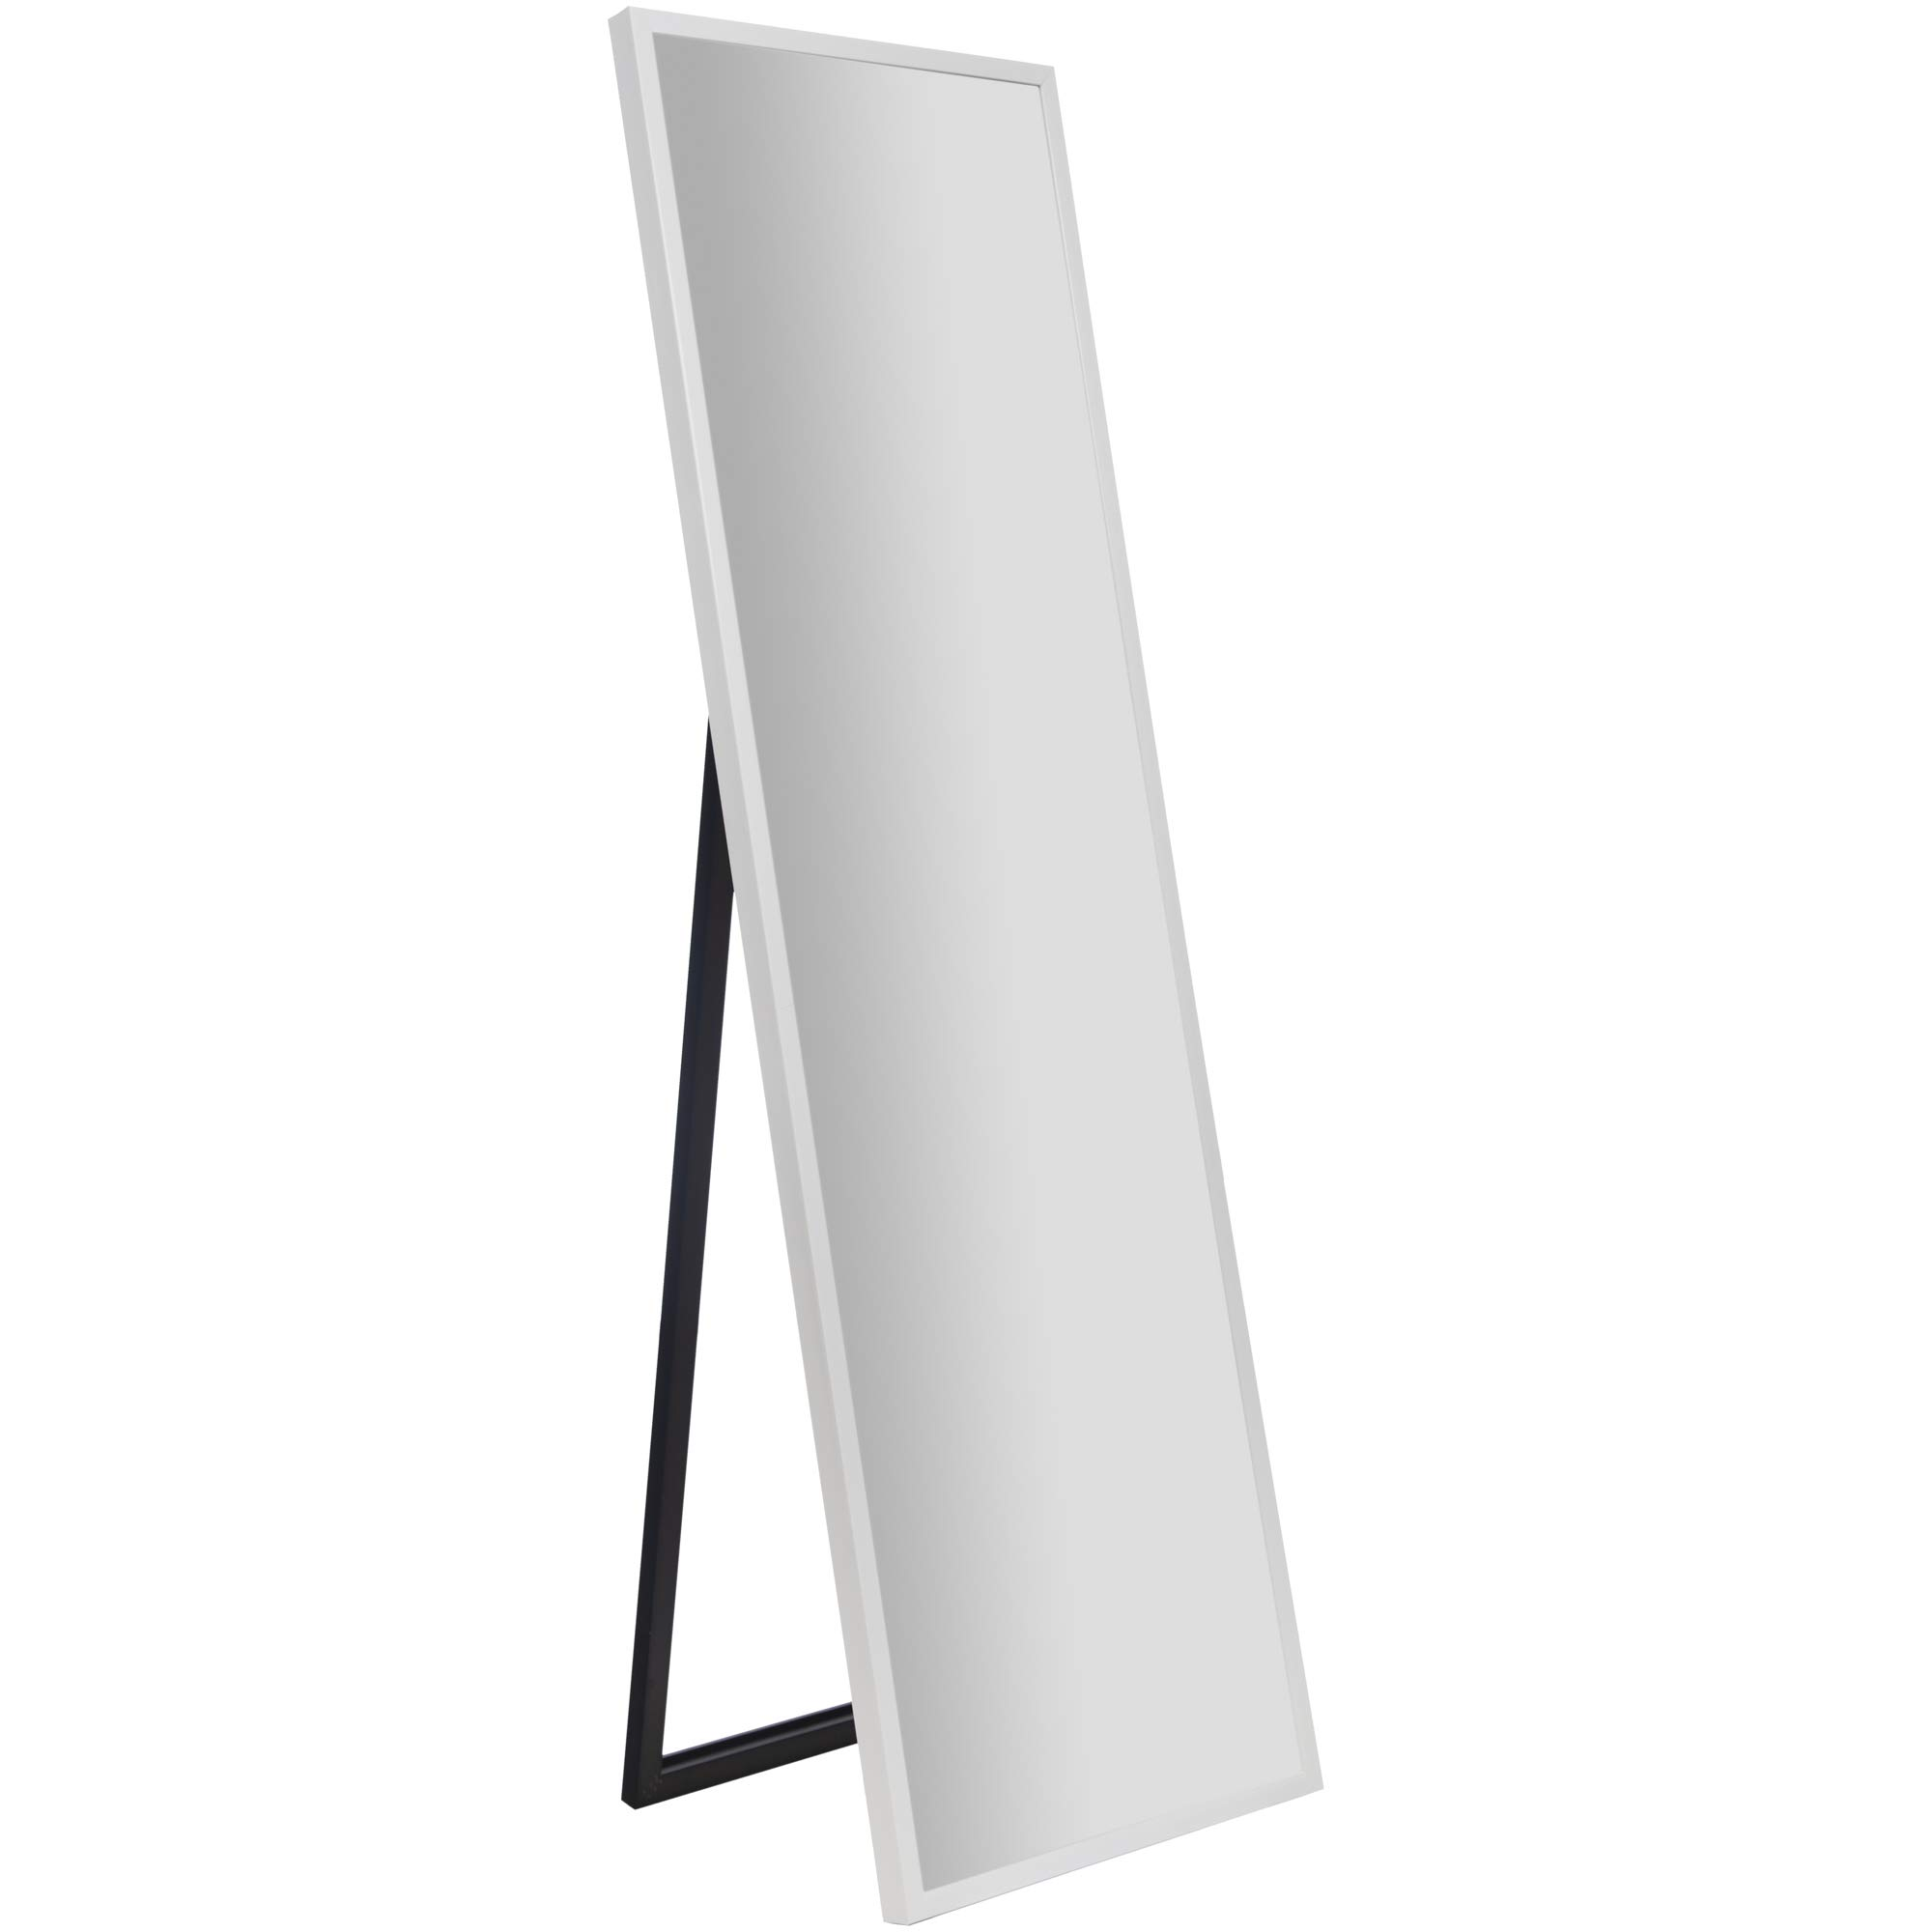 Everly Hart Collection 16'' x 57'' Full Length White Floor Free Standing Easel Mirror by Everly Hart Collection